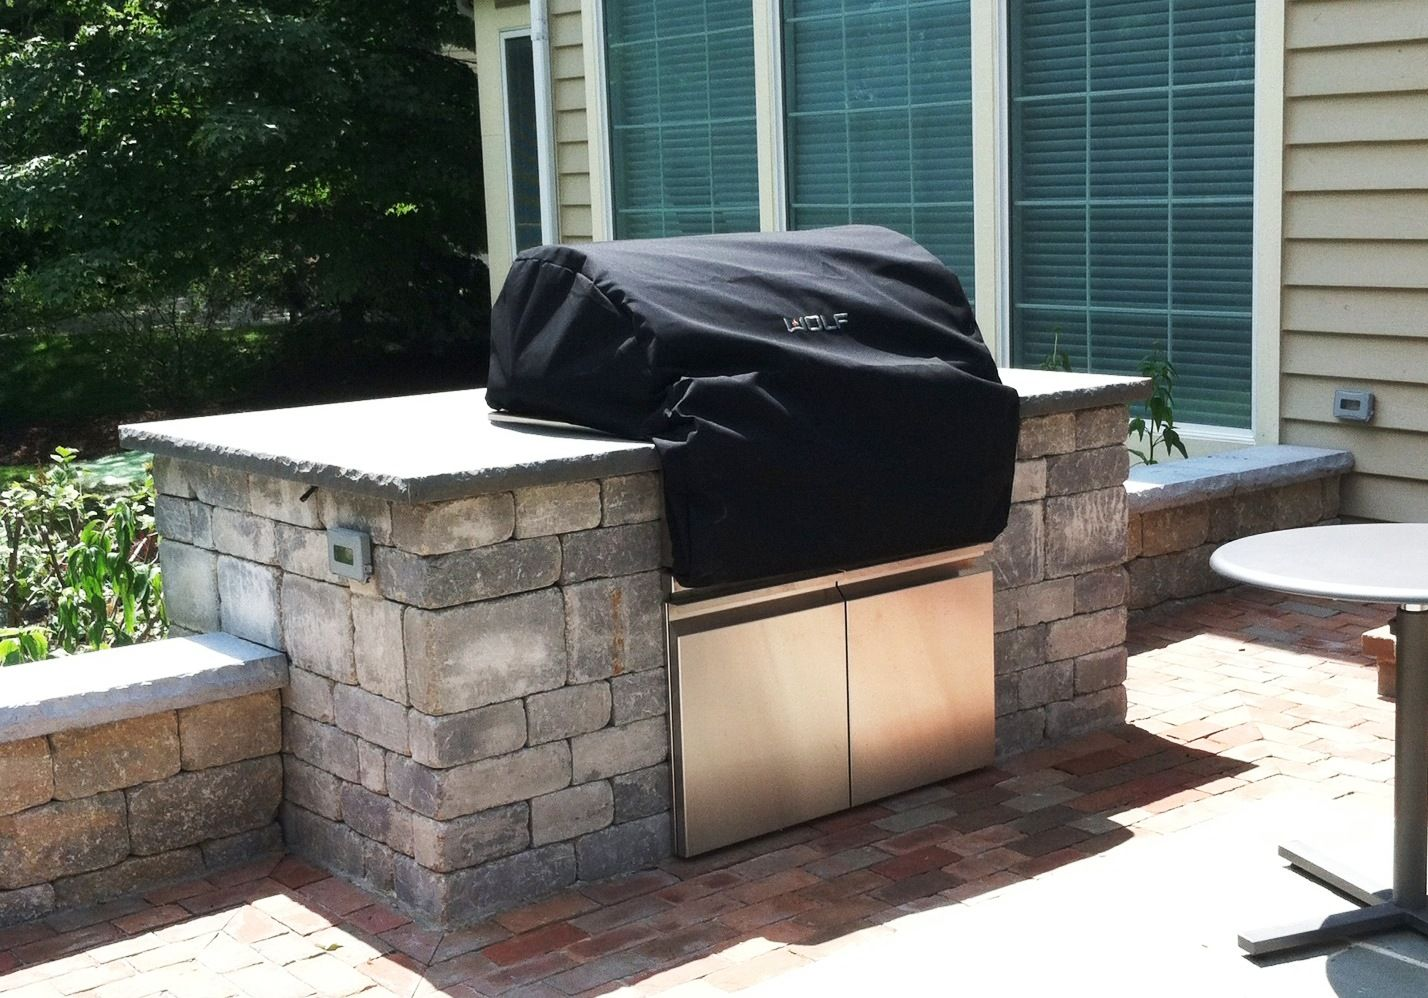 Gas Grill Set In Brussels Wall Stone Surround With Bluestone Countertop Outdoor Kitchen Countertops Outdoor Kitchen Design Outdoor Kitchen